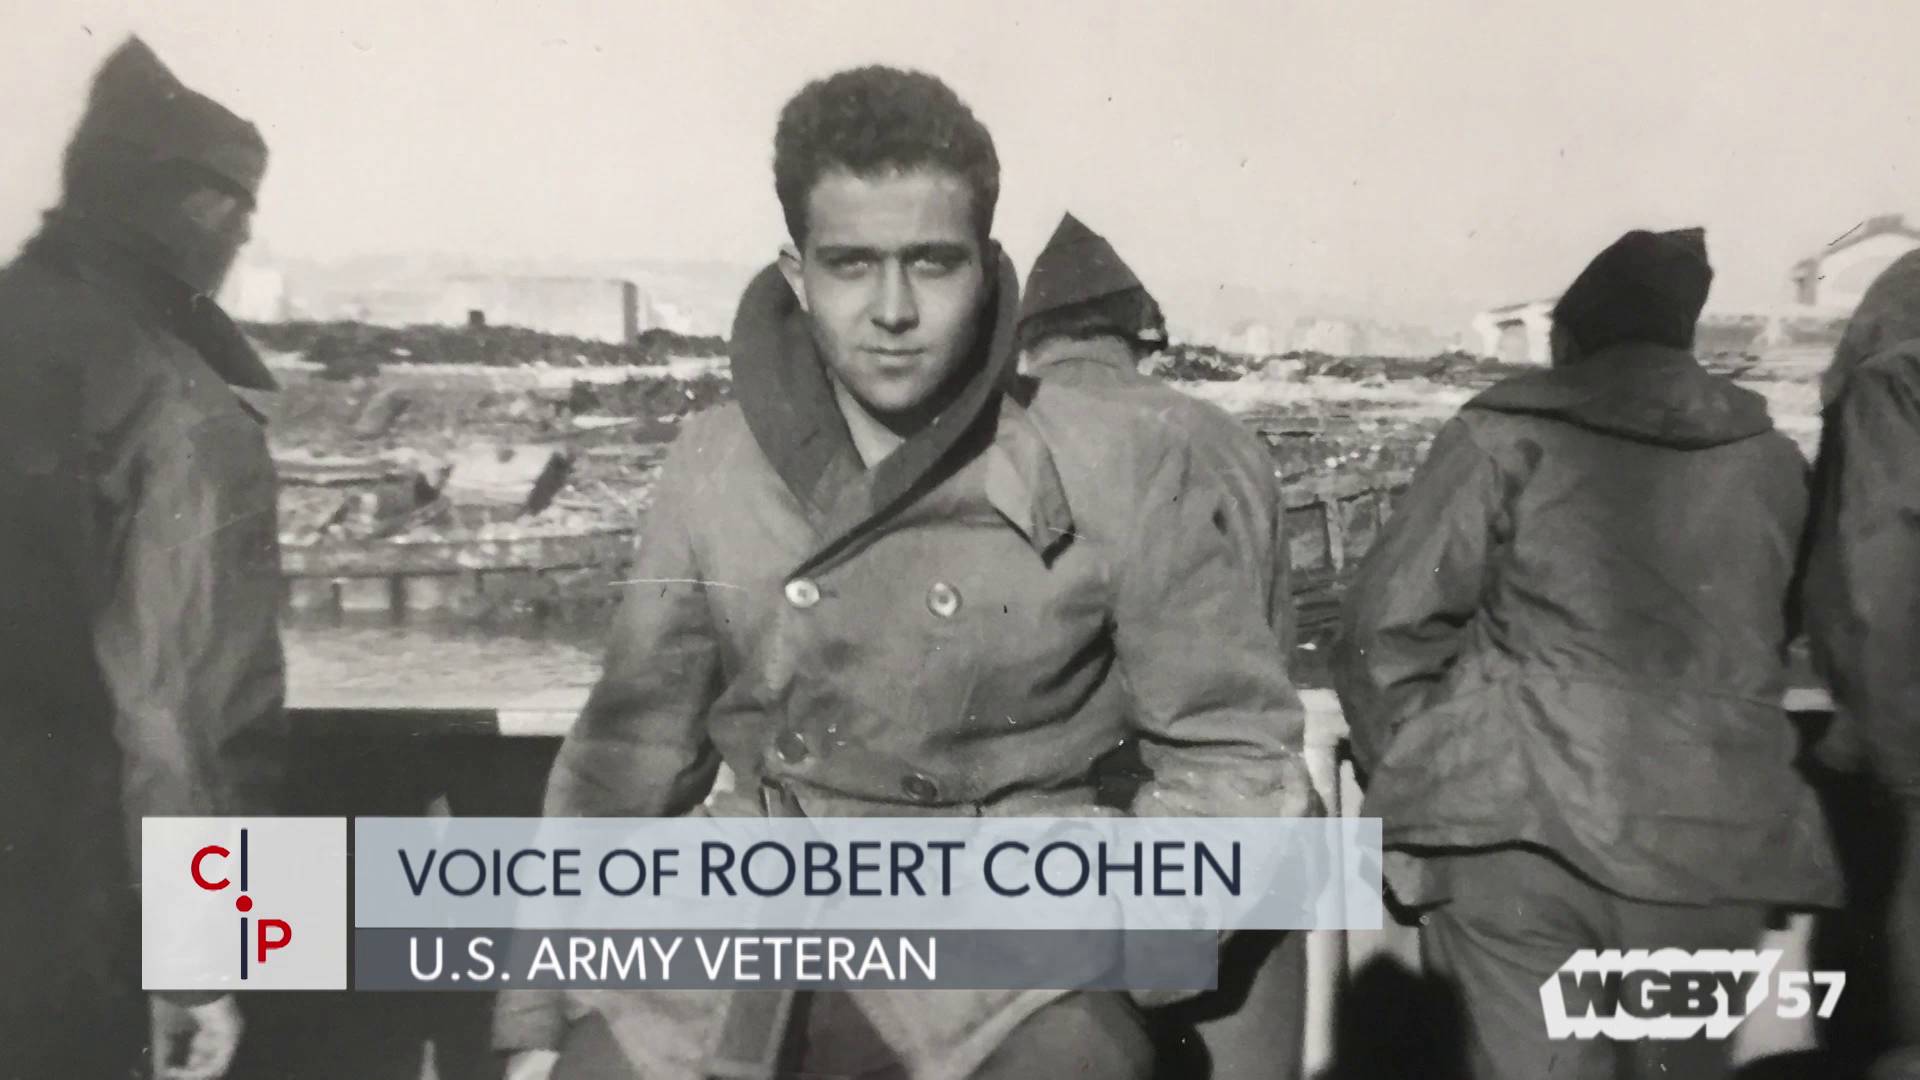 Jewish American WWII veteran Robert Cohen served in the European Theater, and was part of the US Army force that laid communication lines for the Battle of the Bulge. He passed away in March 2018. Cohen's daughter, Carol Katz, remembers her father's legacy, and remembers the stories he shared about the War.